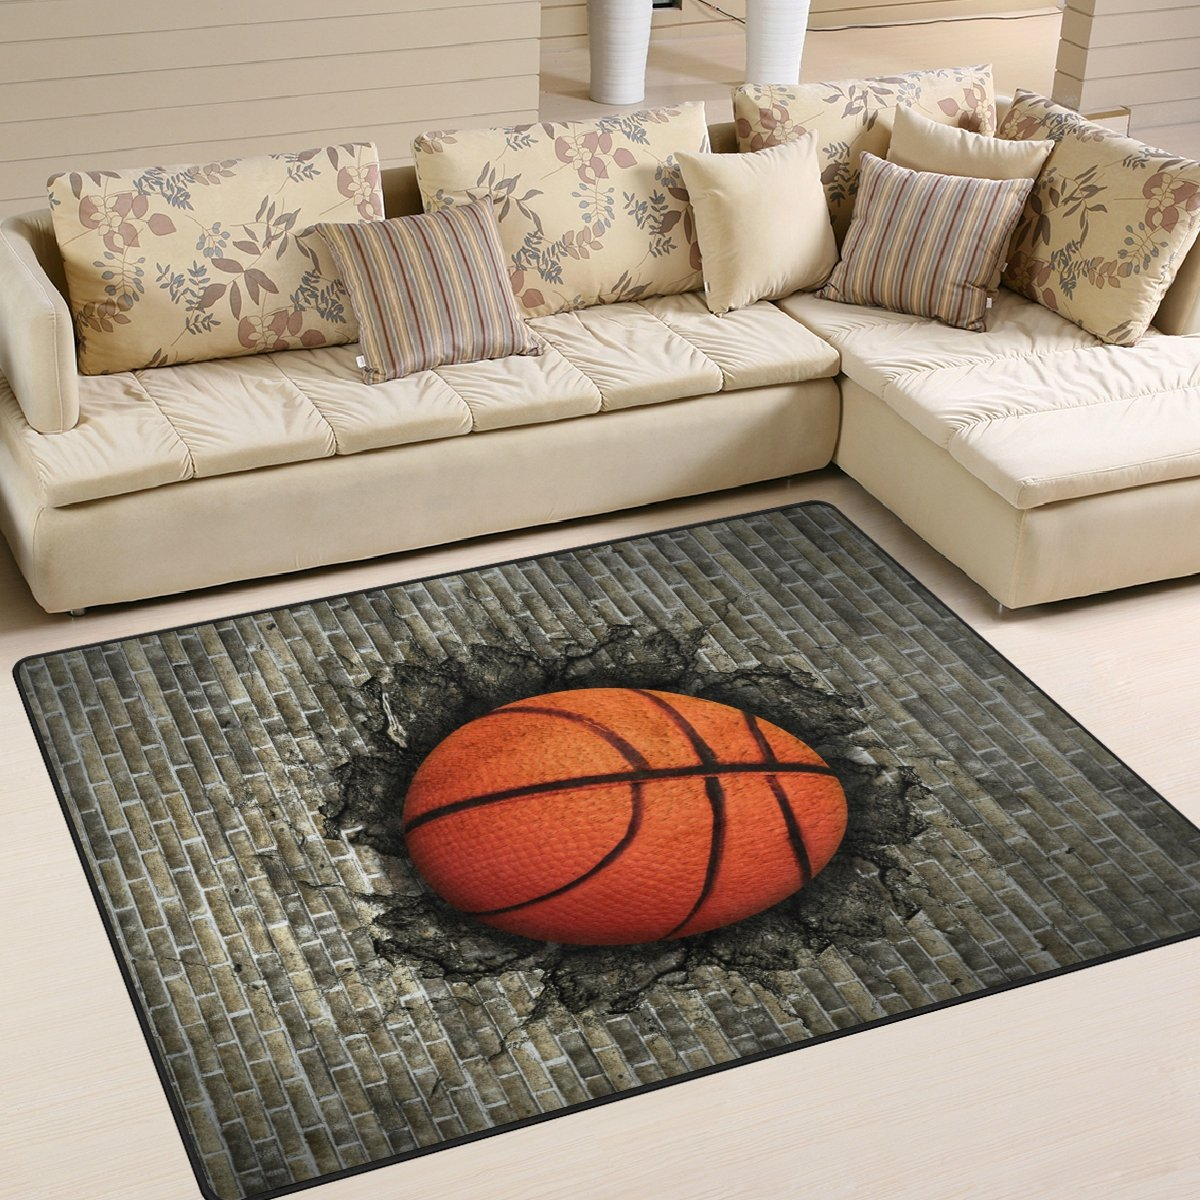 ALAZA Basketball Embedded in Brick Wall Area Rug Rugs for Living Room Bedroom 7' x 5'